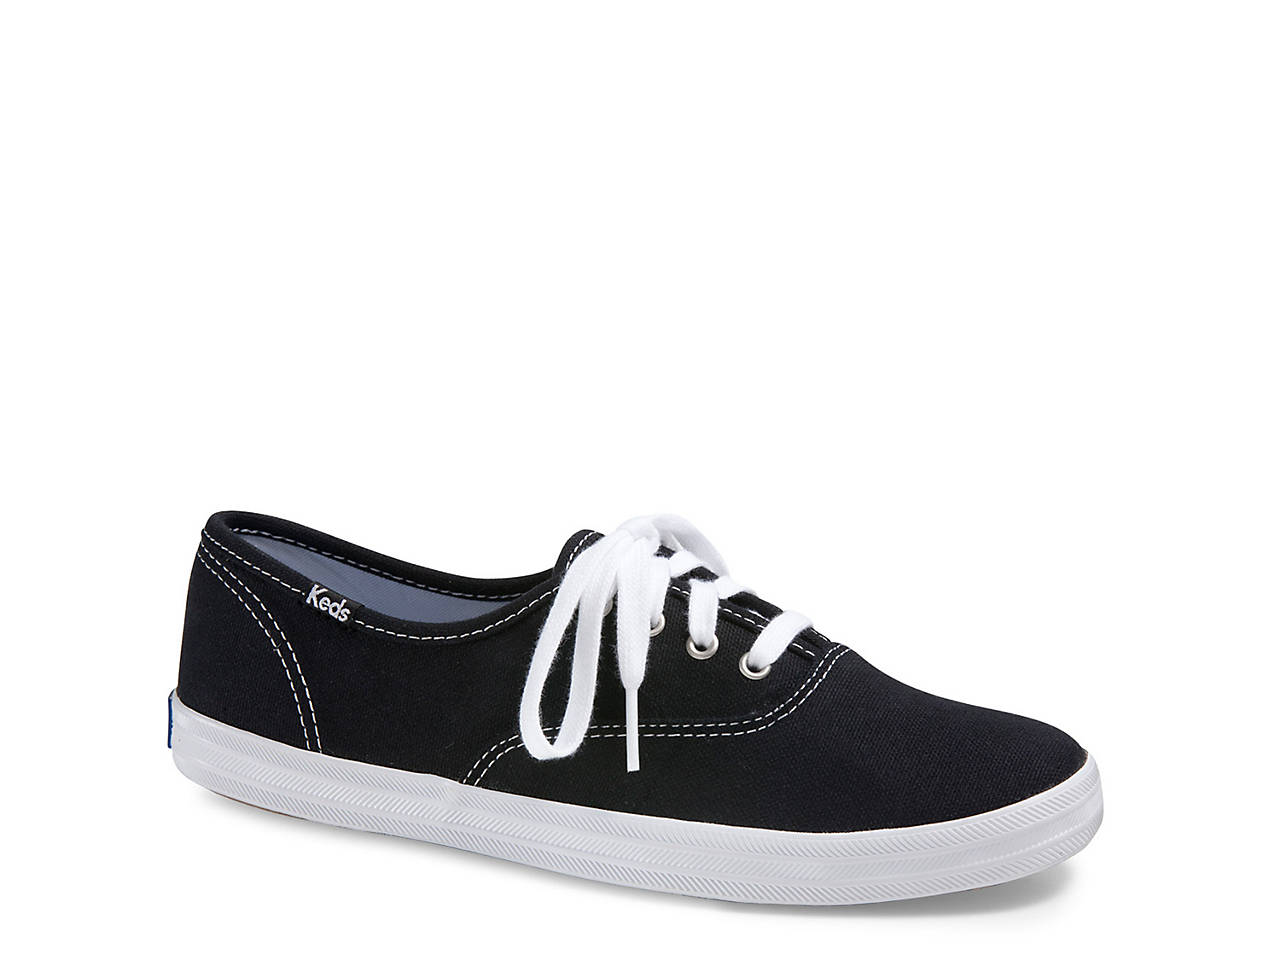 3800bed23892 Keds Champion Sneaker - Women s Women s Shoes